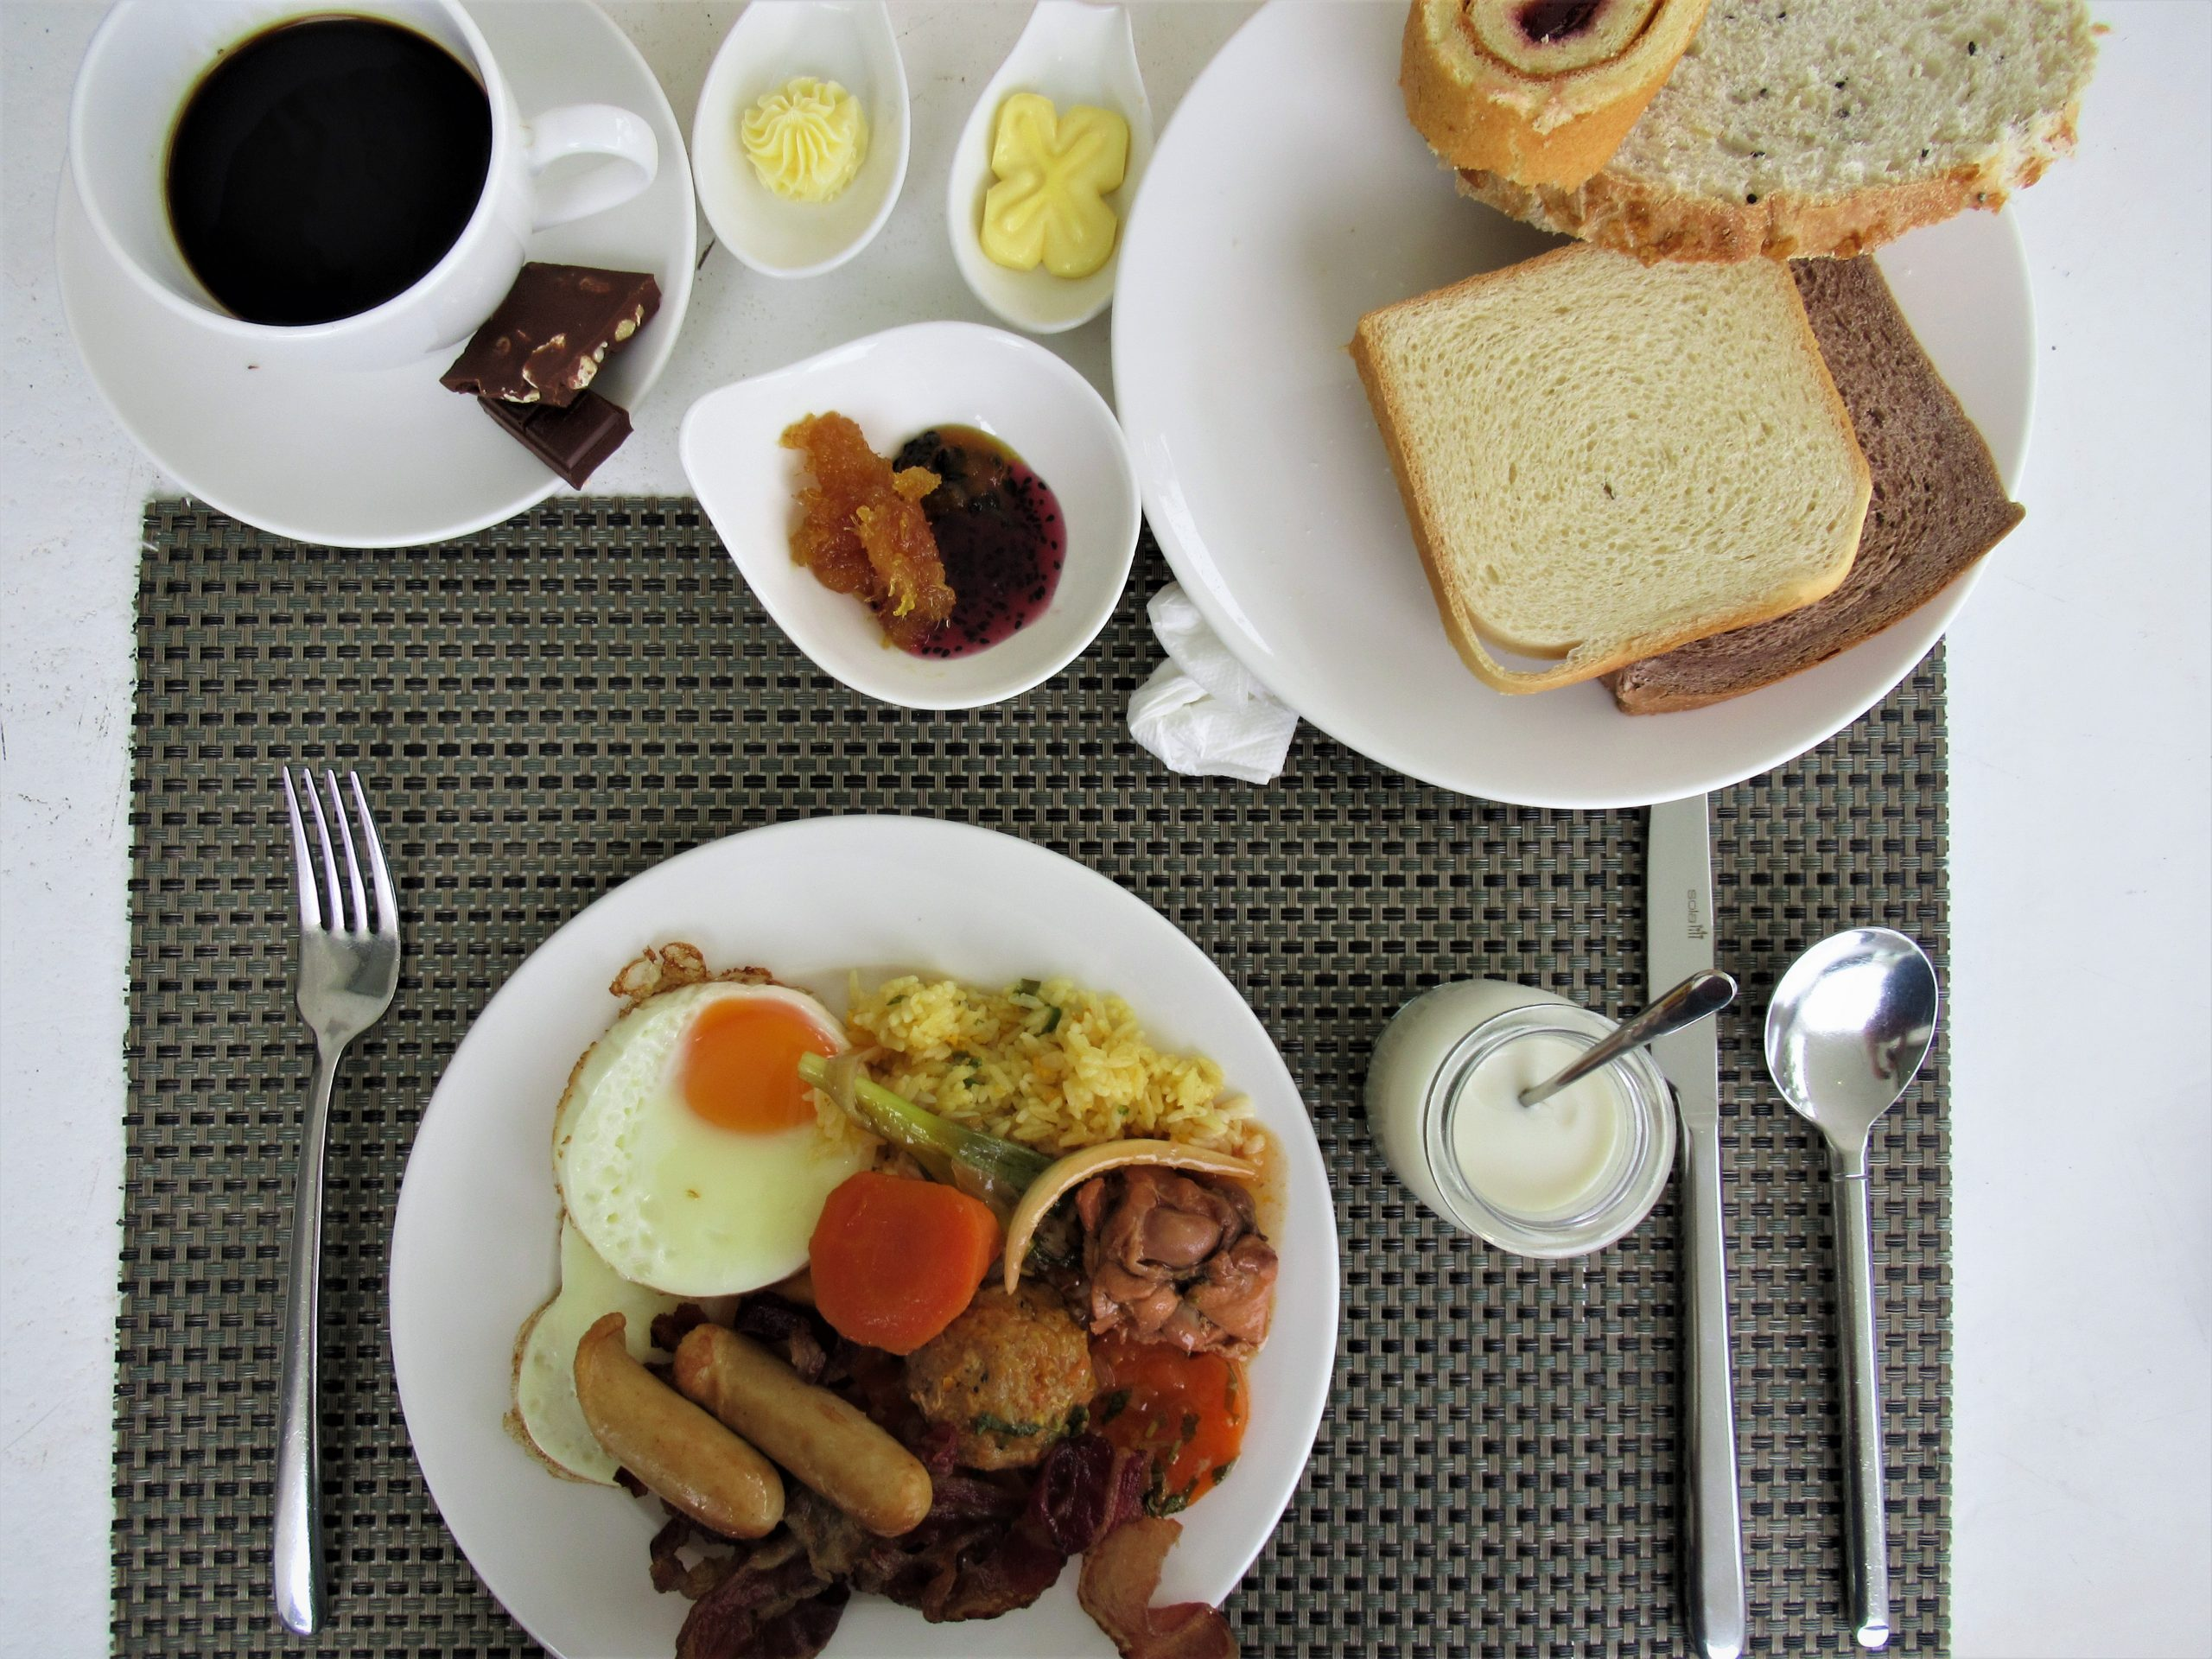 Buffet breakfast, The Shells Resort, Phu Quoc Island, Vietnam